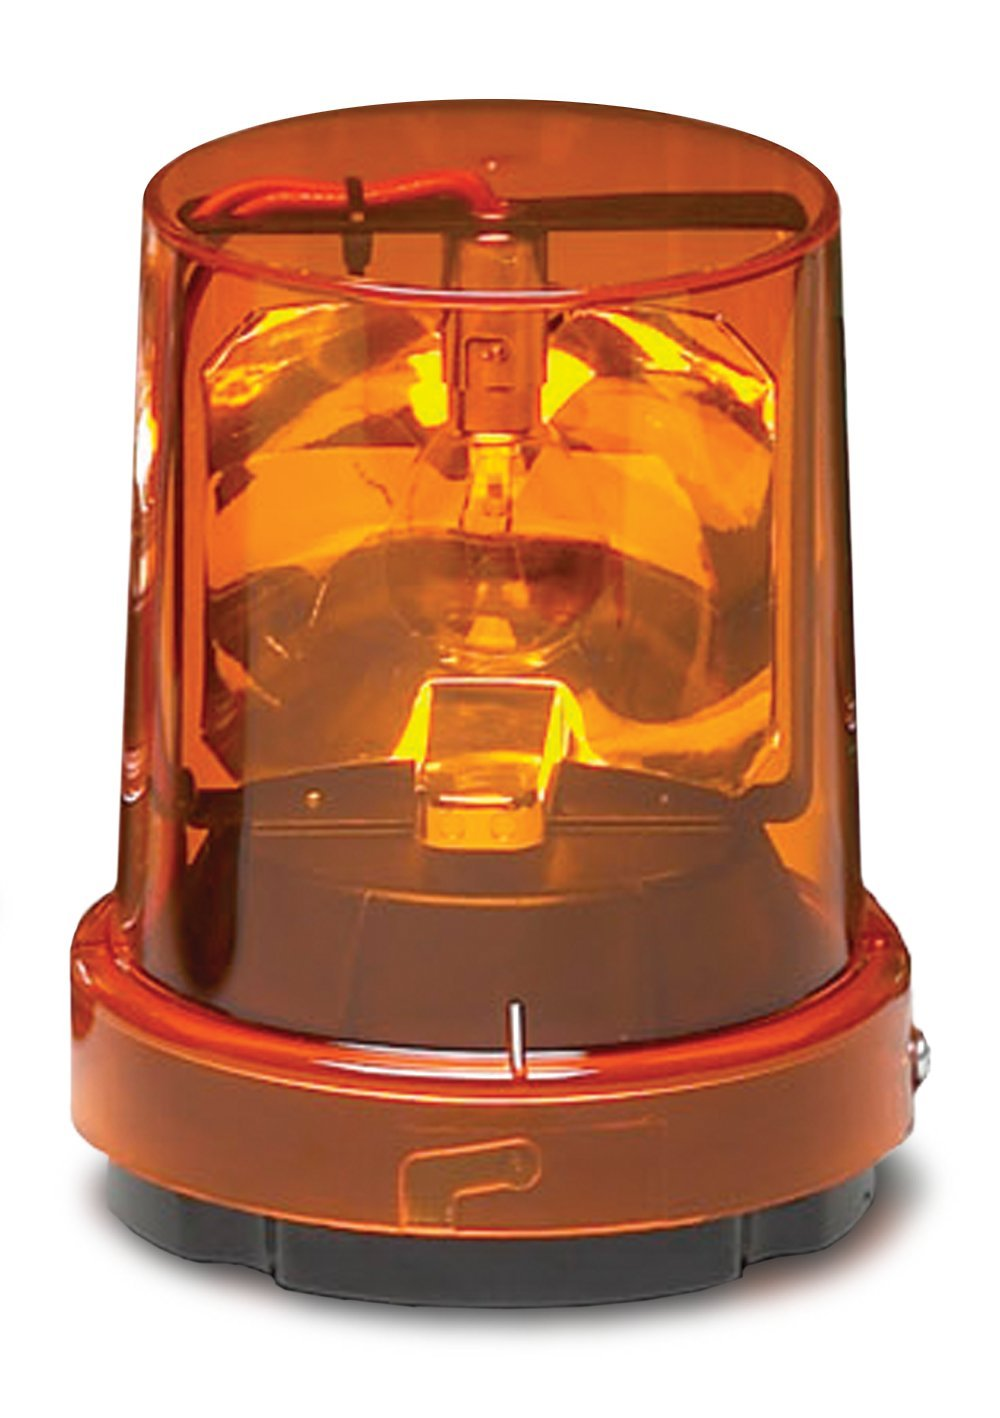 Federal Signal 121S-120A Amber Rotating Light